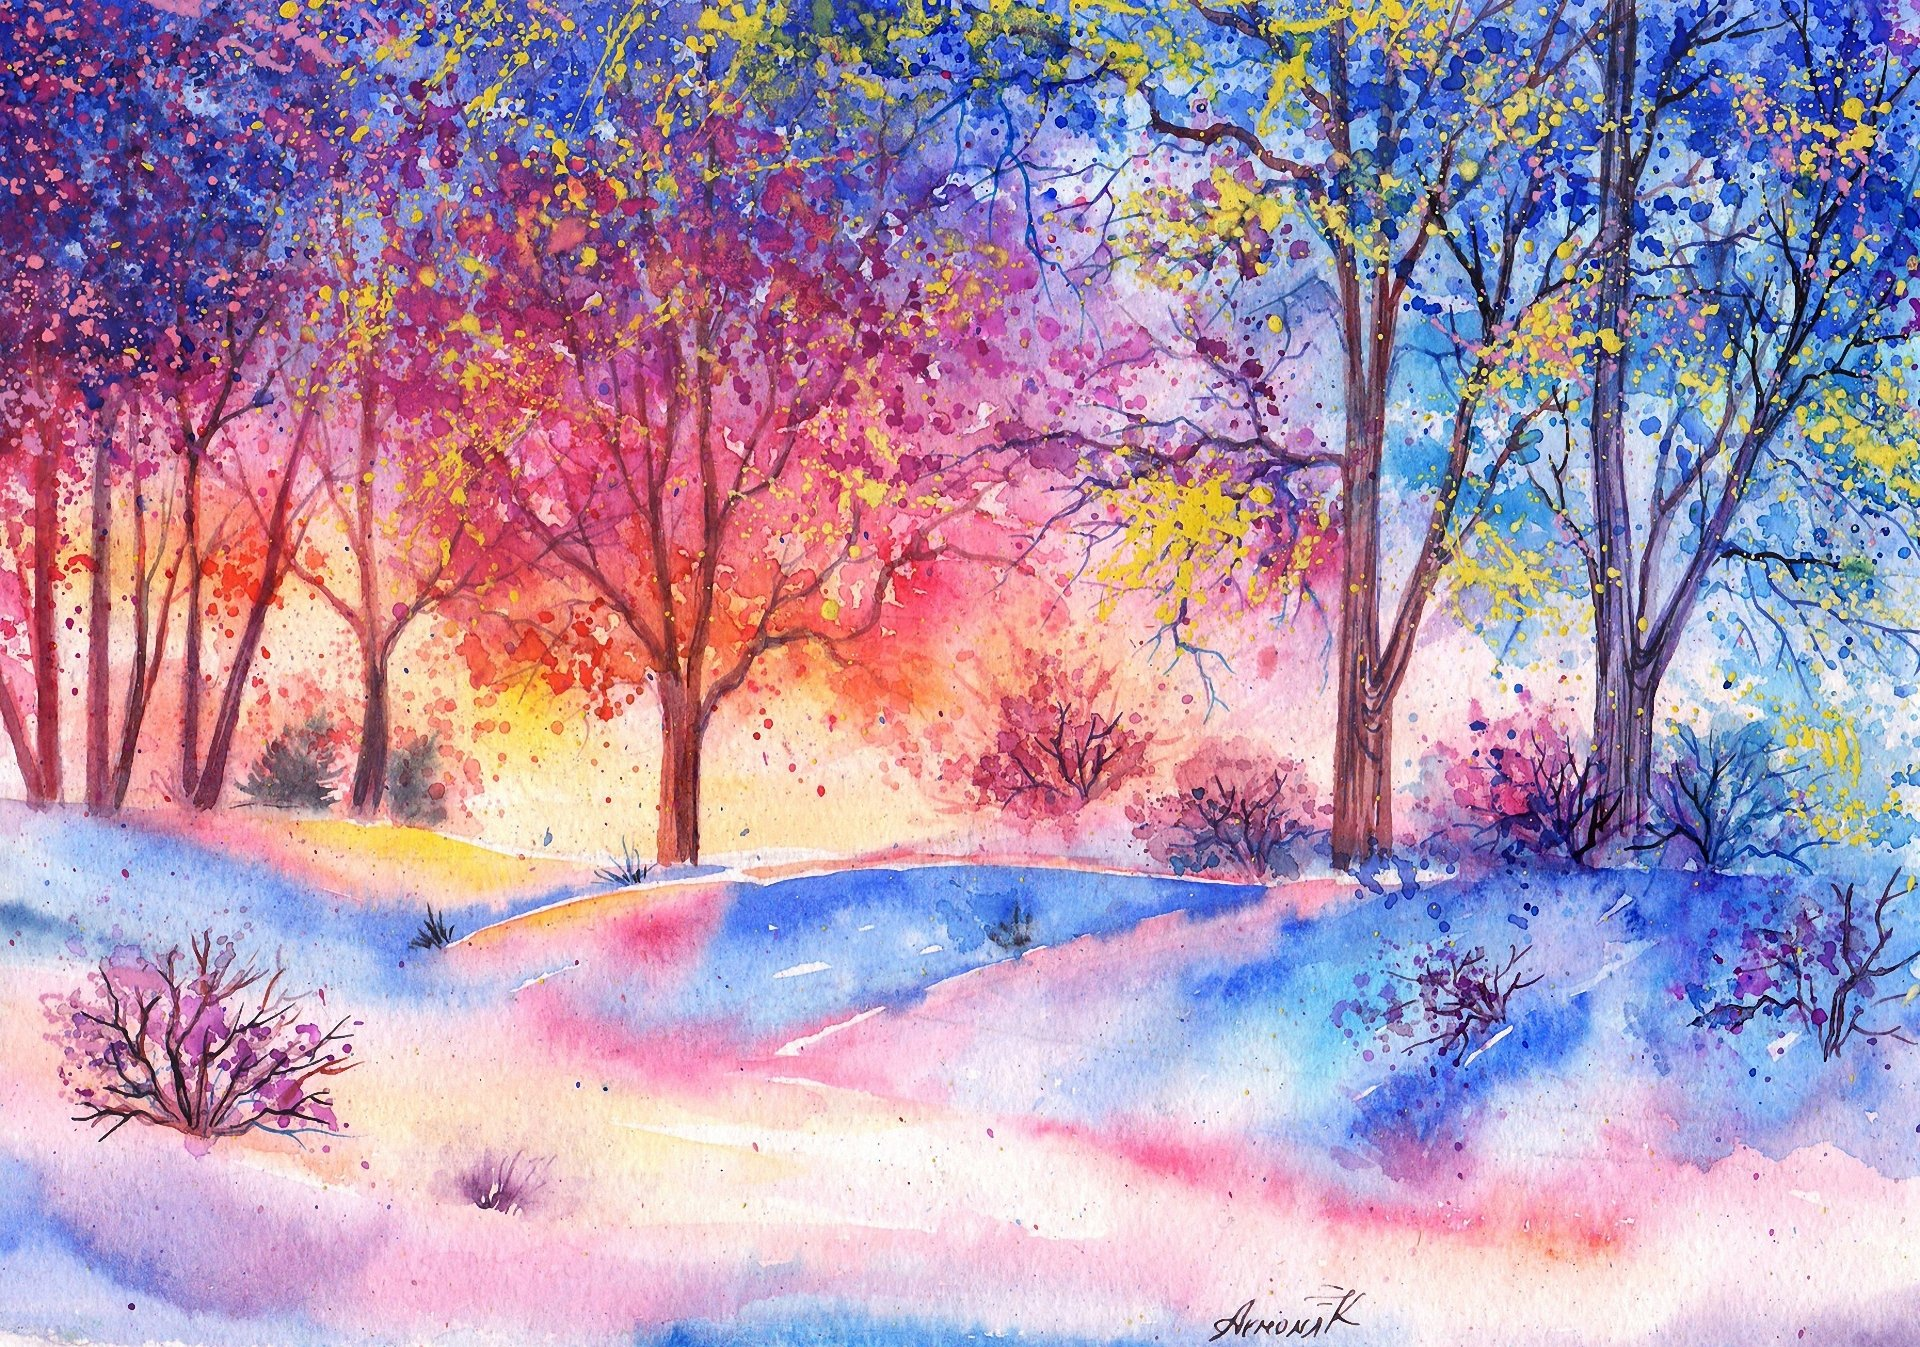 watercolor paintings images - HD1200×900